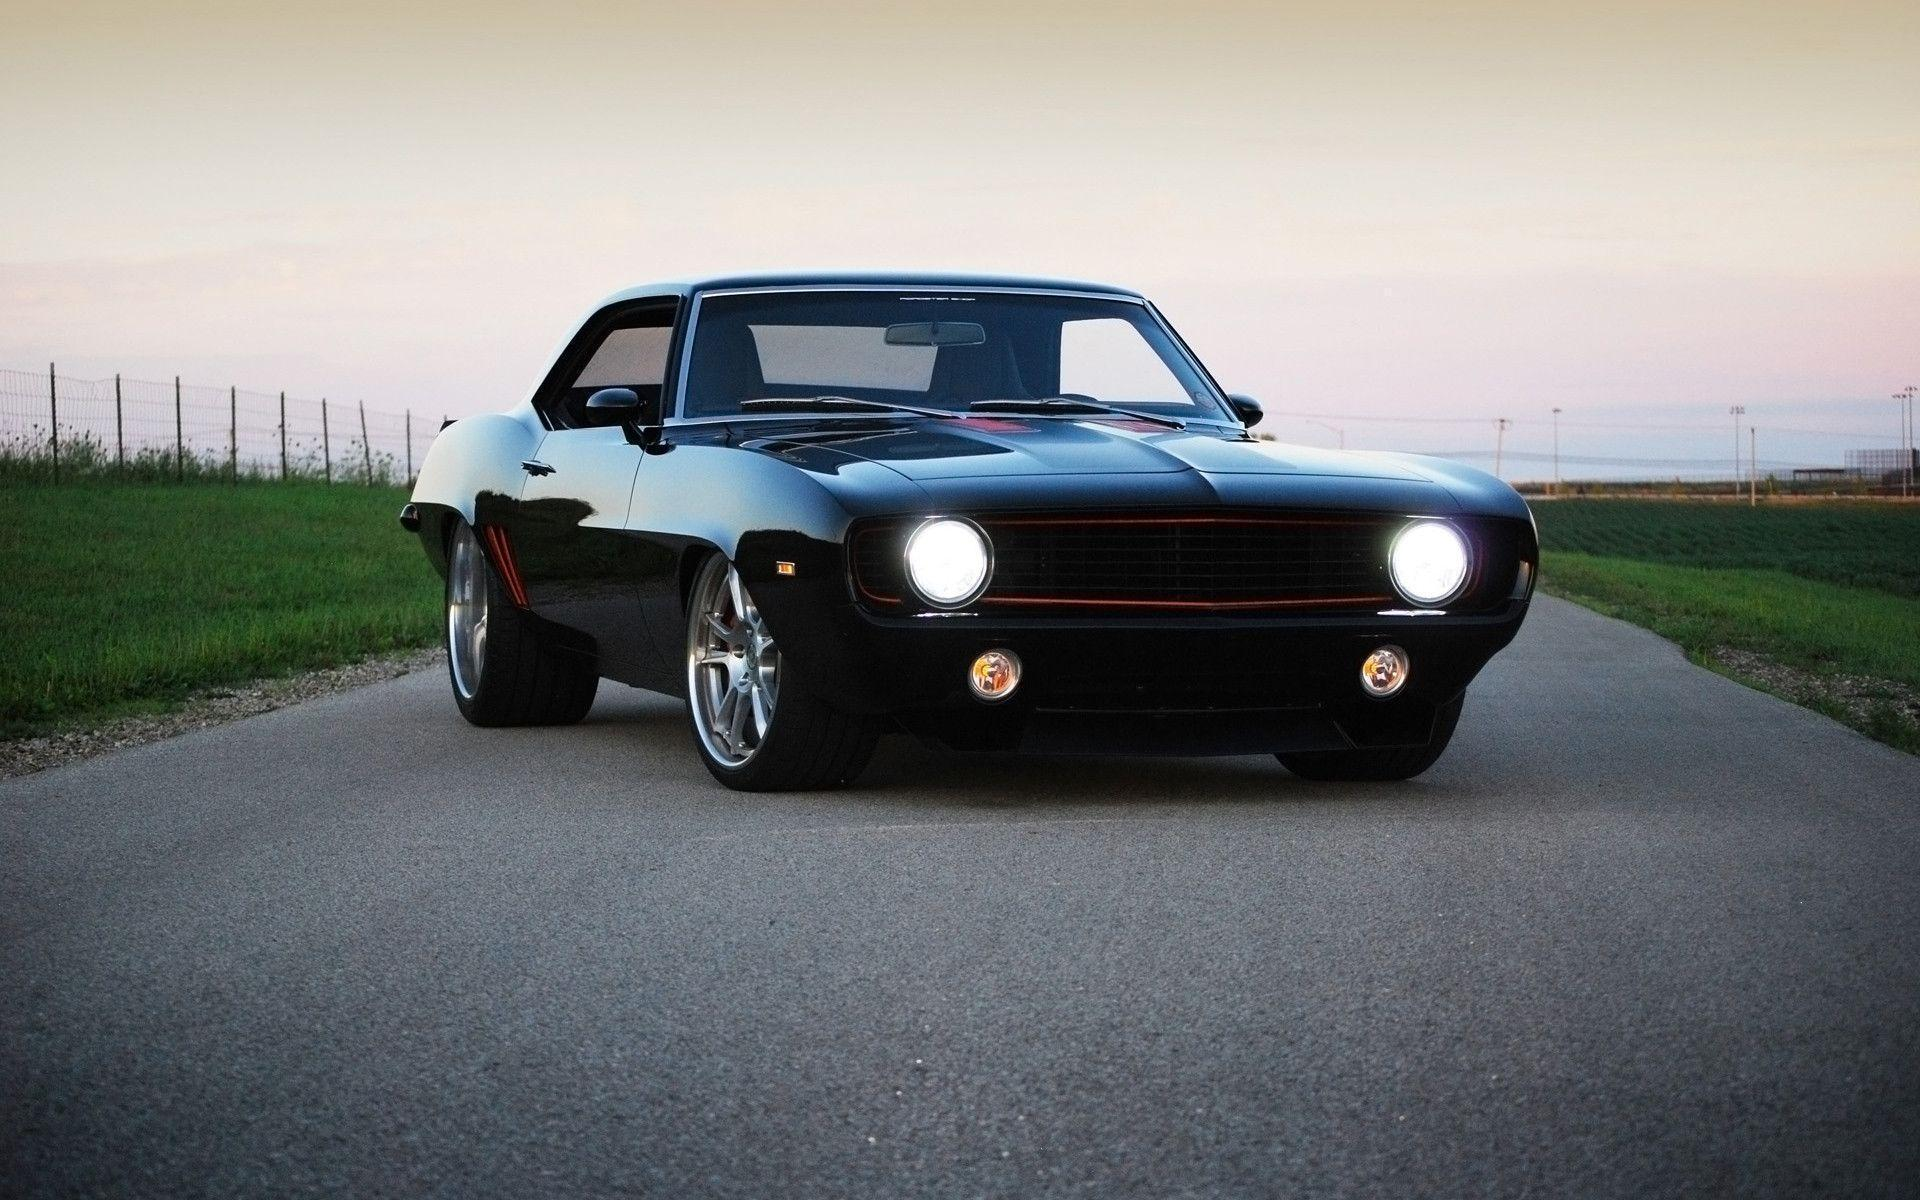 1969 Camaro Wallpapers Wallpaper Cave